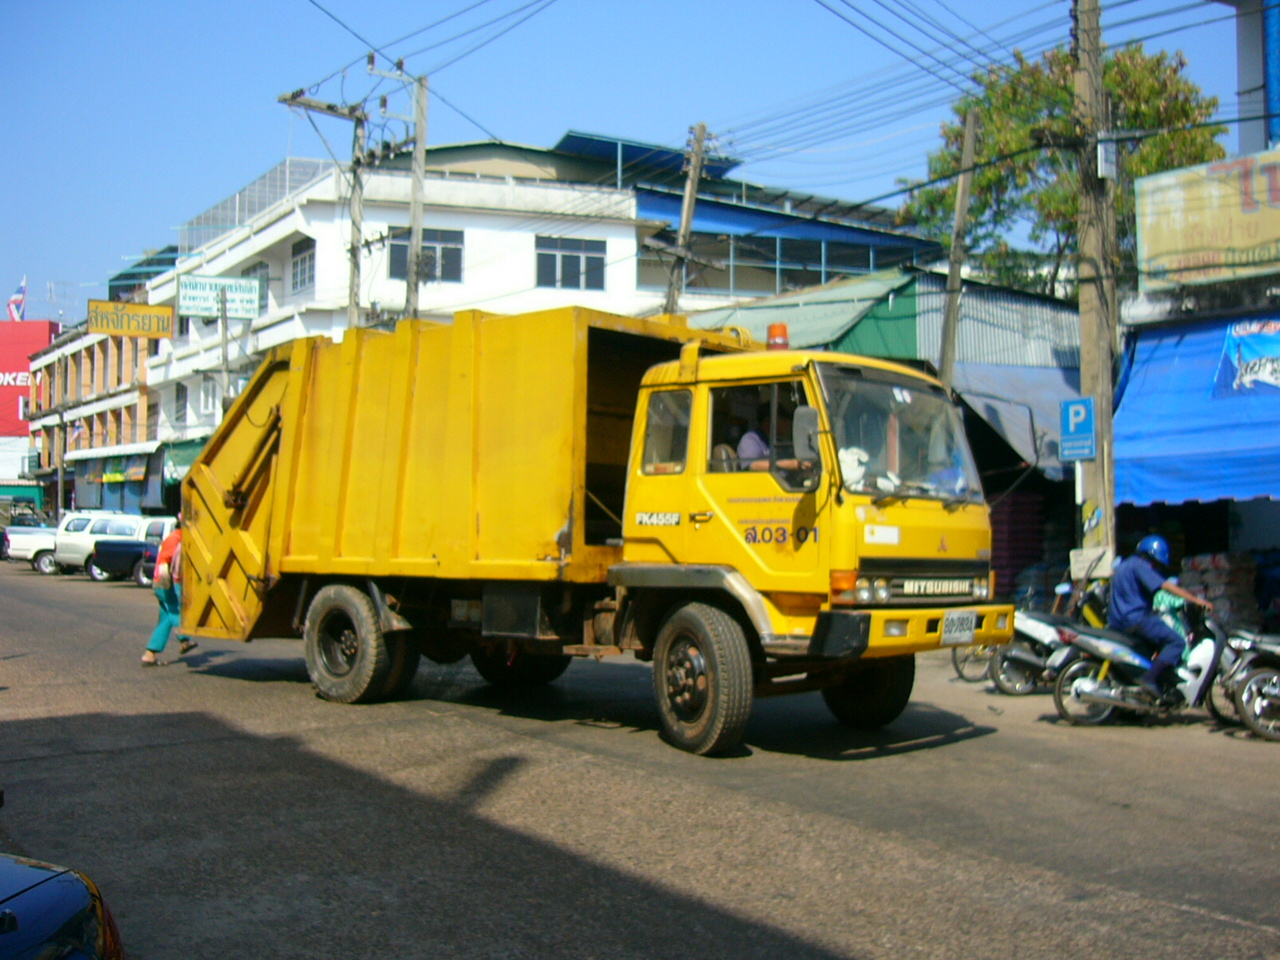 File:Waste collection vehicle-Thai.JPG - Wikimedia Commons